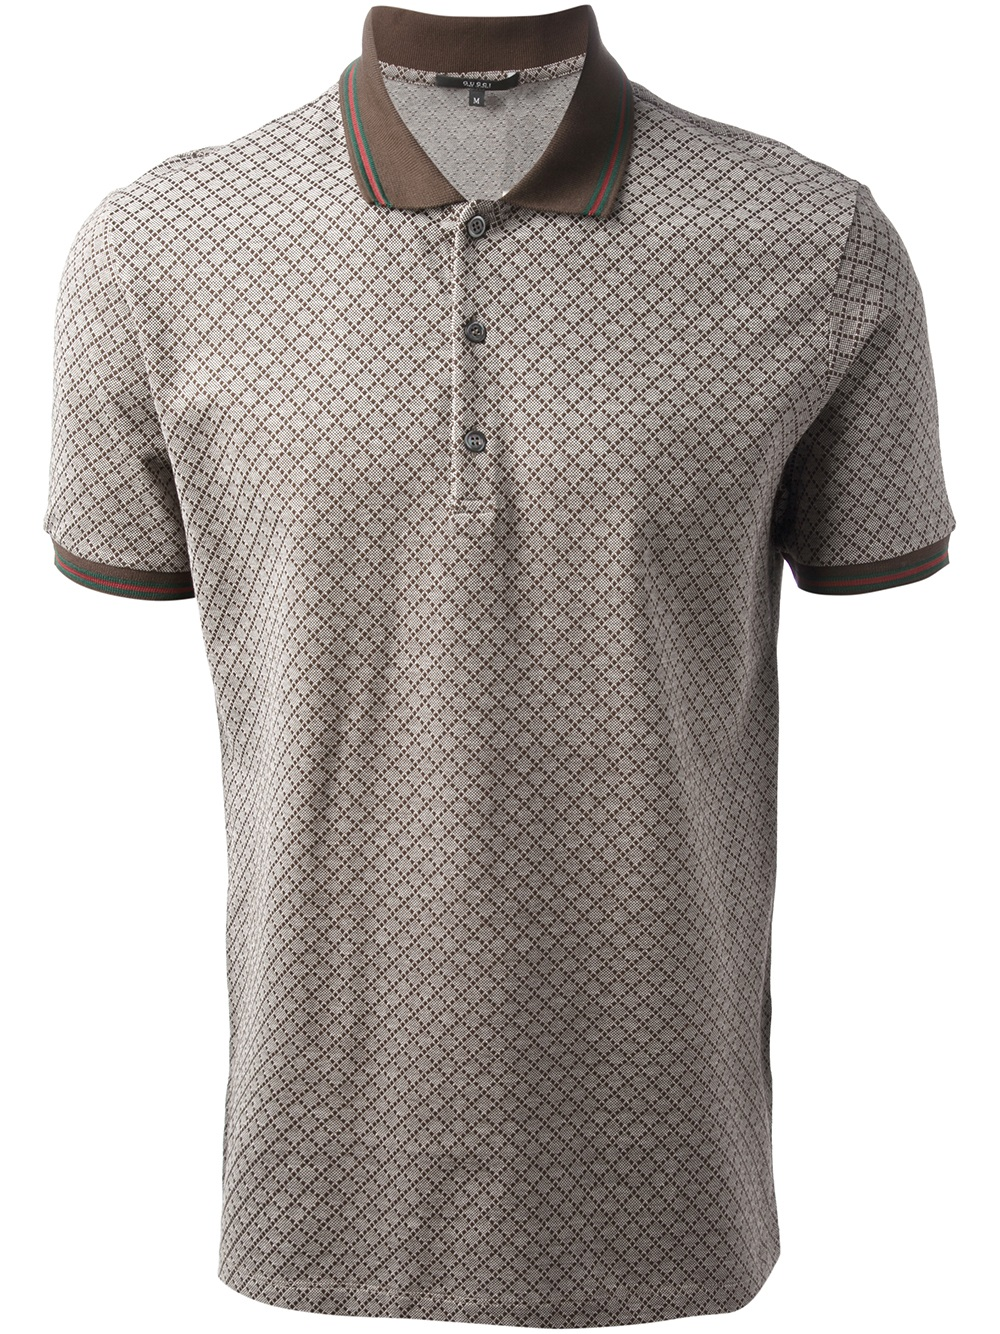 ede877b6ddc9 Gucci Grid Print Polo Shirt in Brown for Men - Lyst